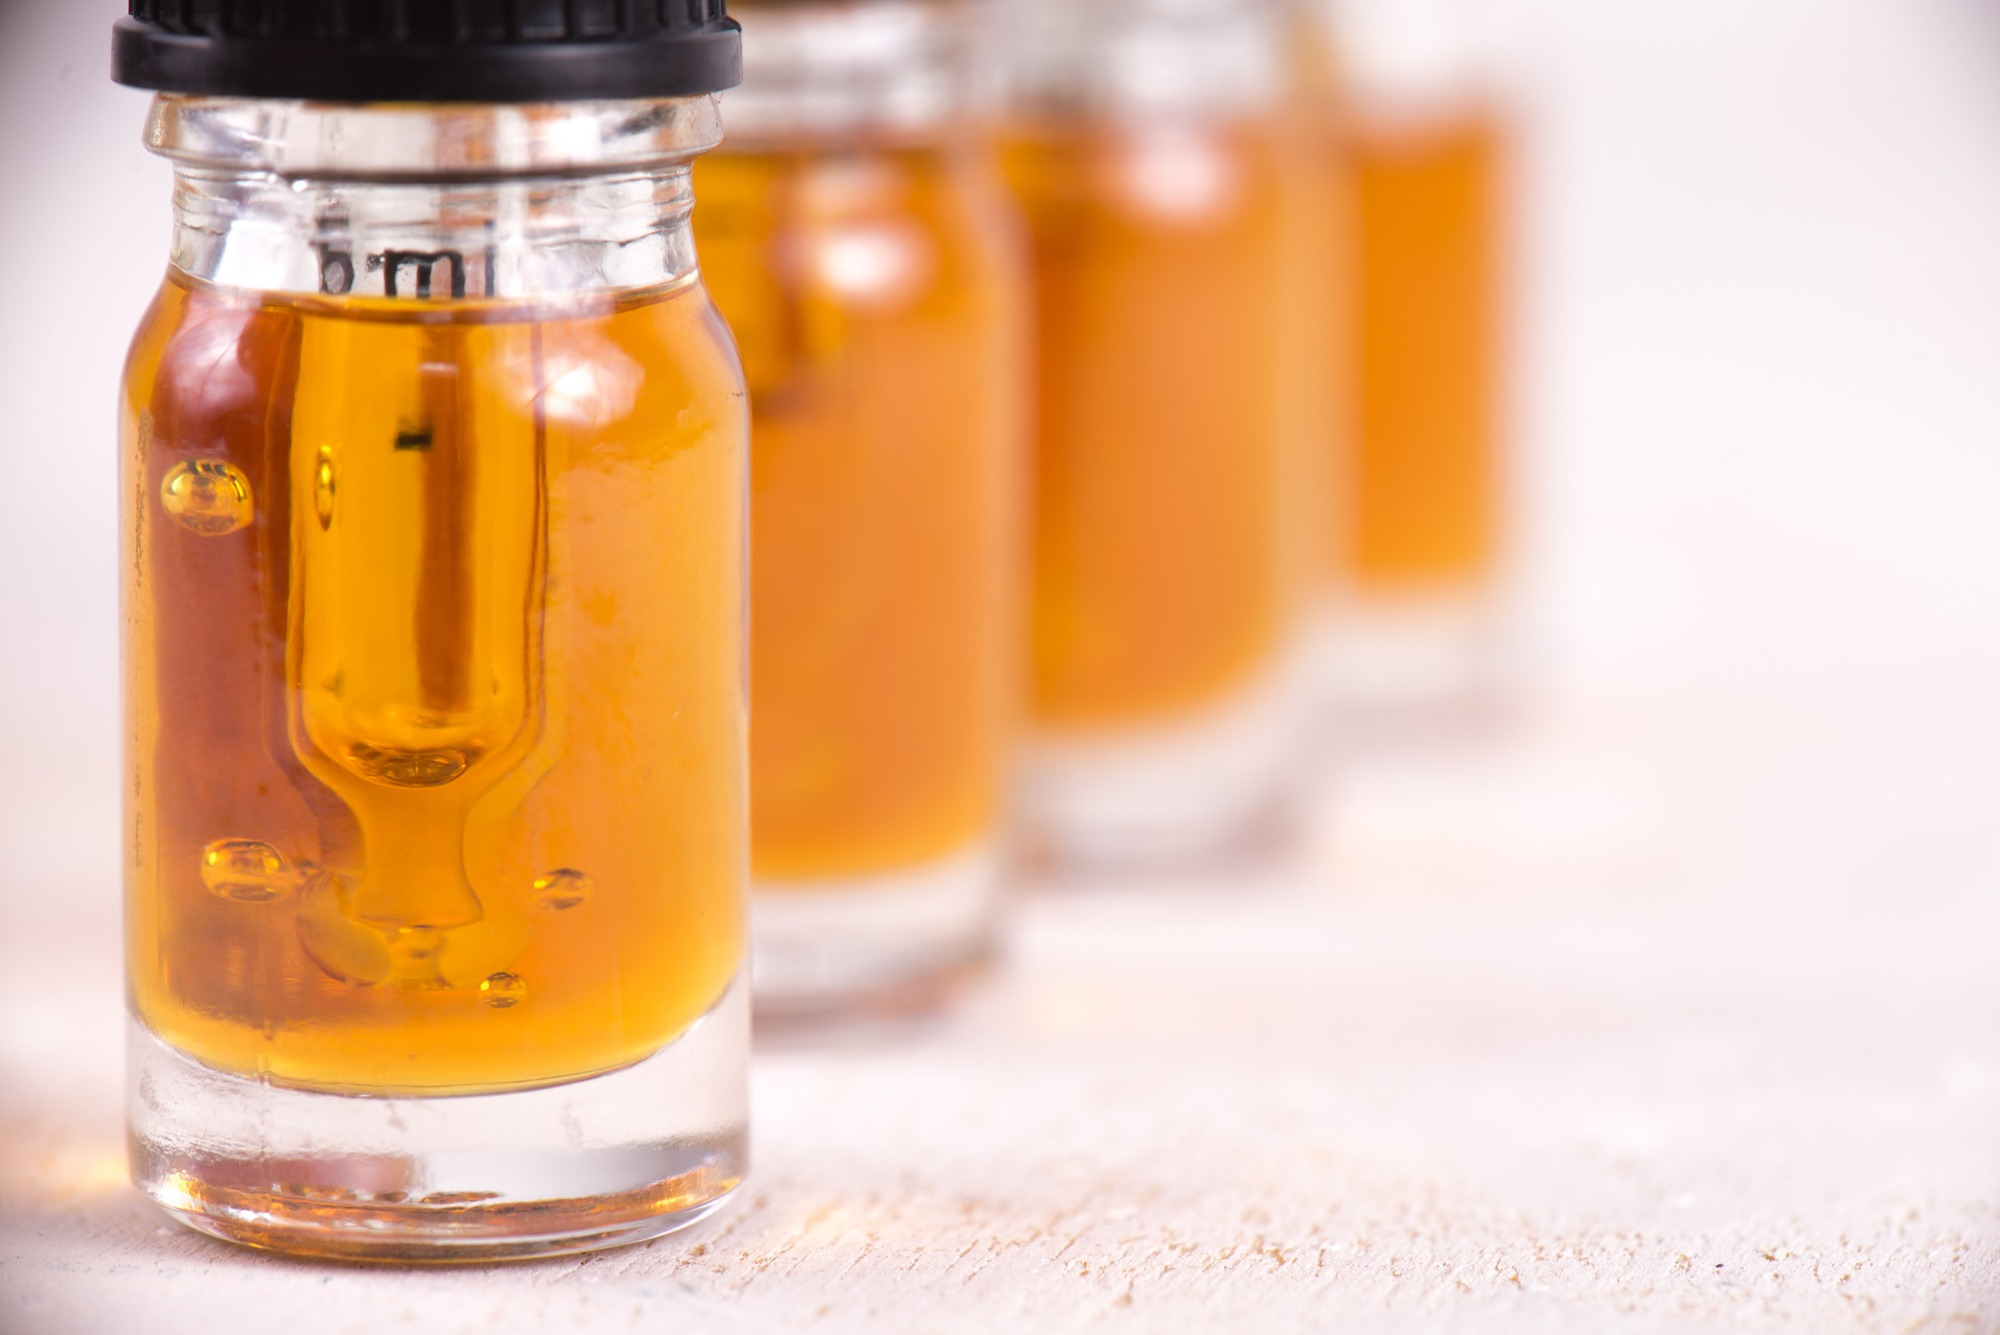 Does CBD Hemp Oil Get You High? An introduction to